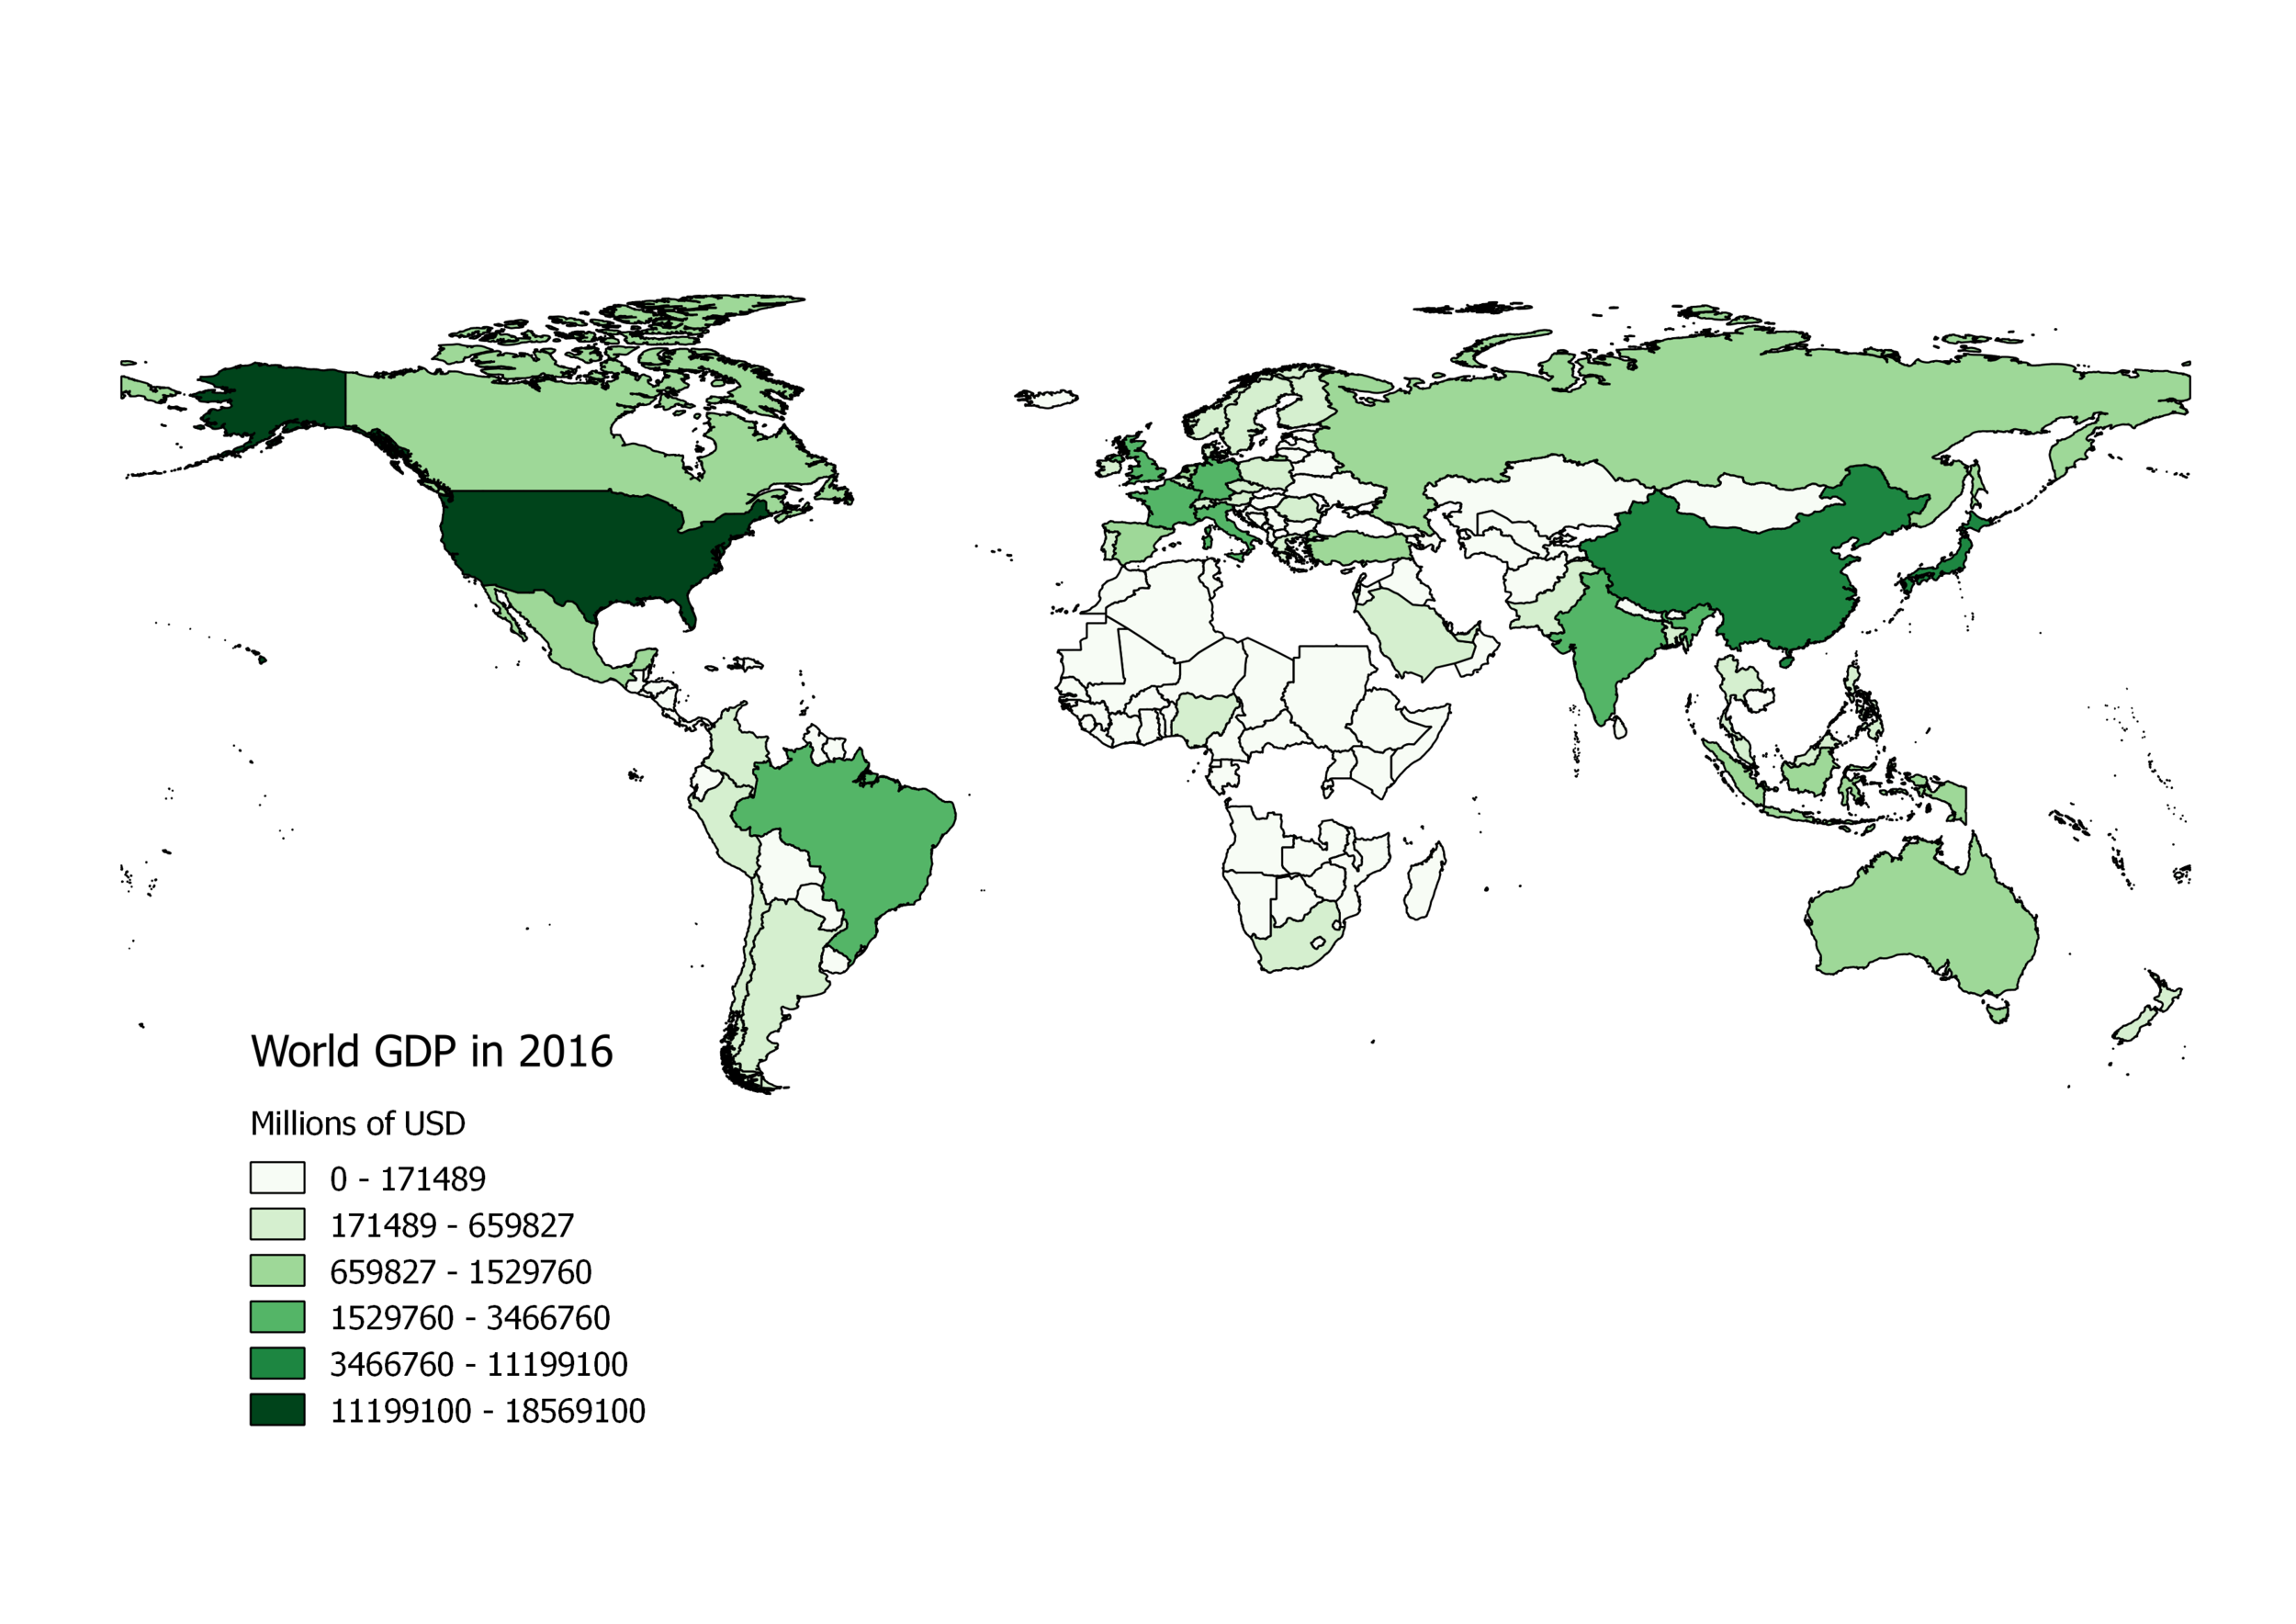 GDP_world_2016.png